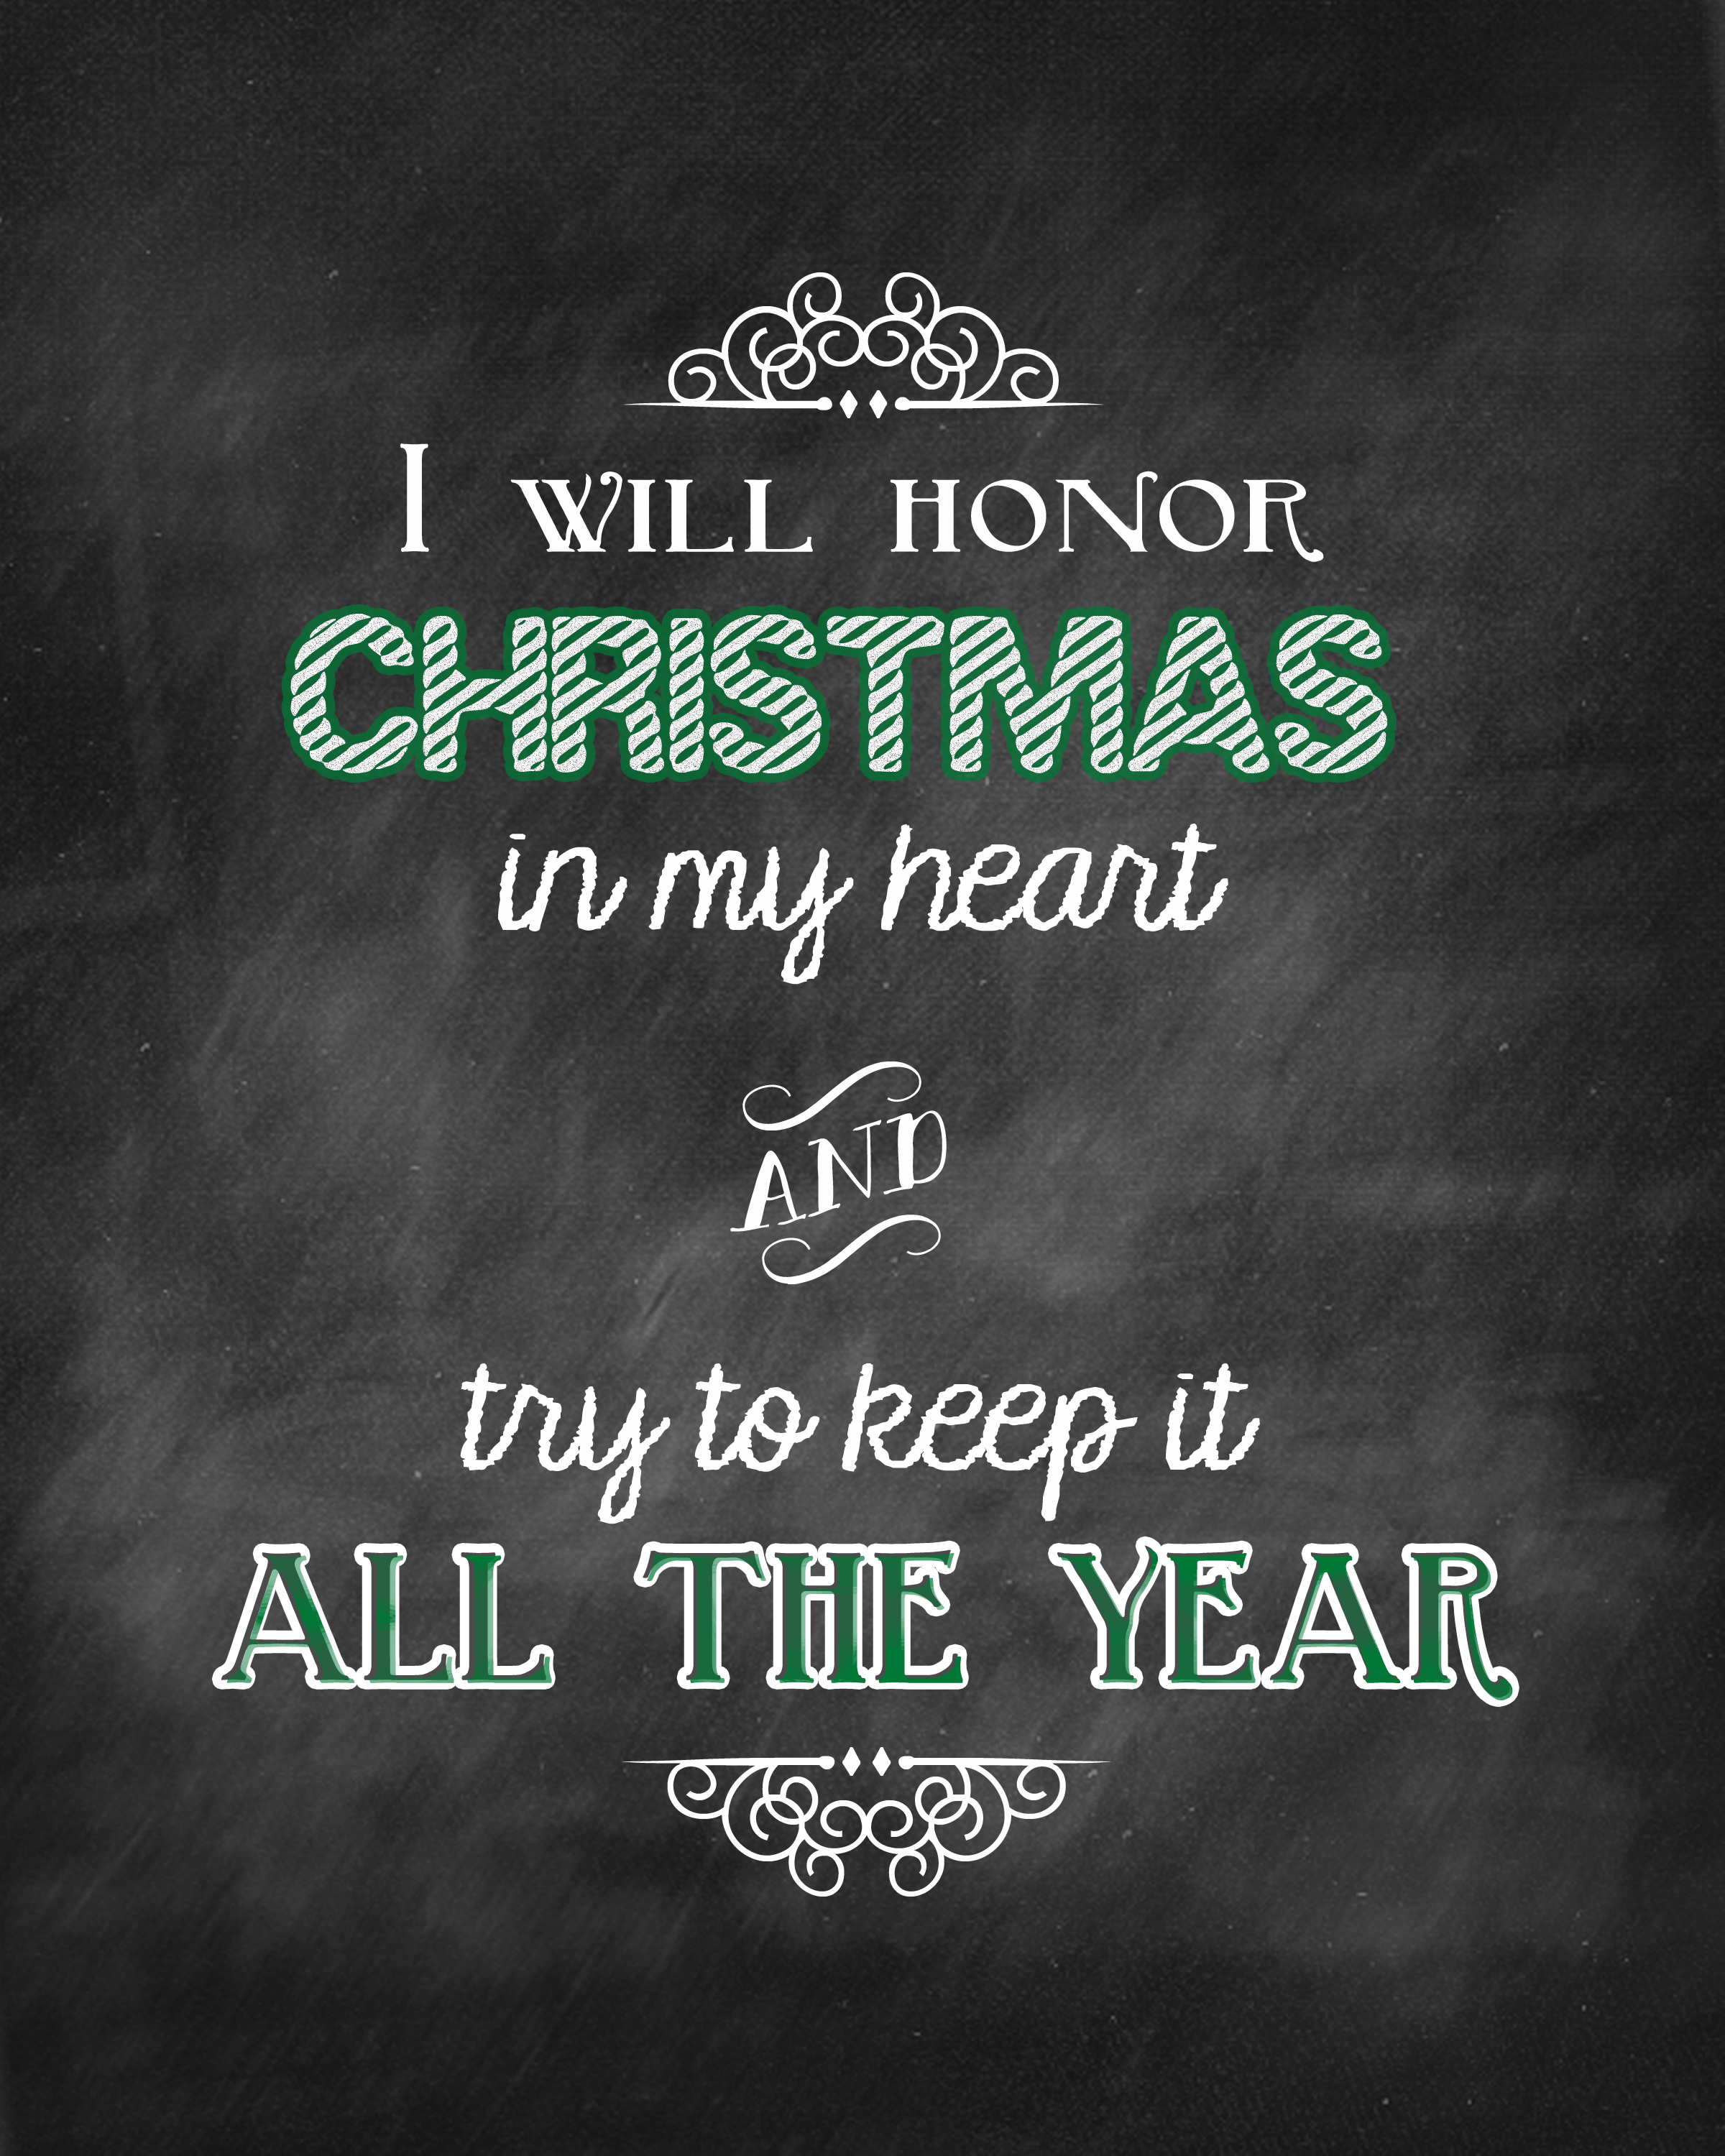 A Christmas Carol Scrooge Quotes.Christmas Quotes Scrooge Ideas Christmas Decorating